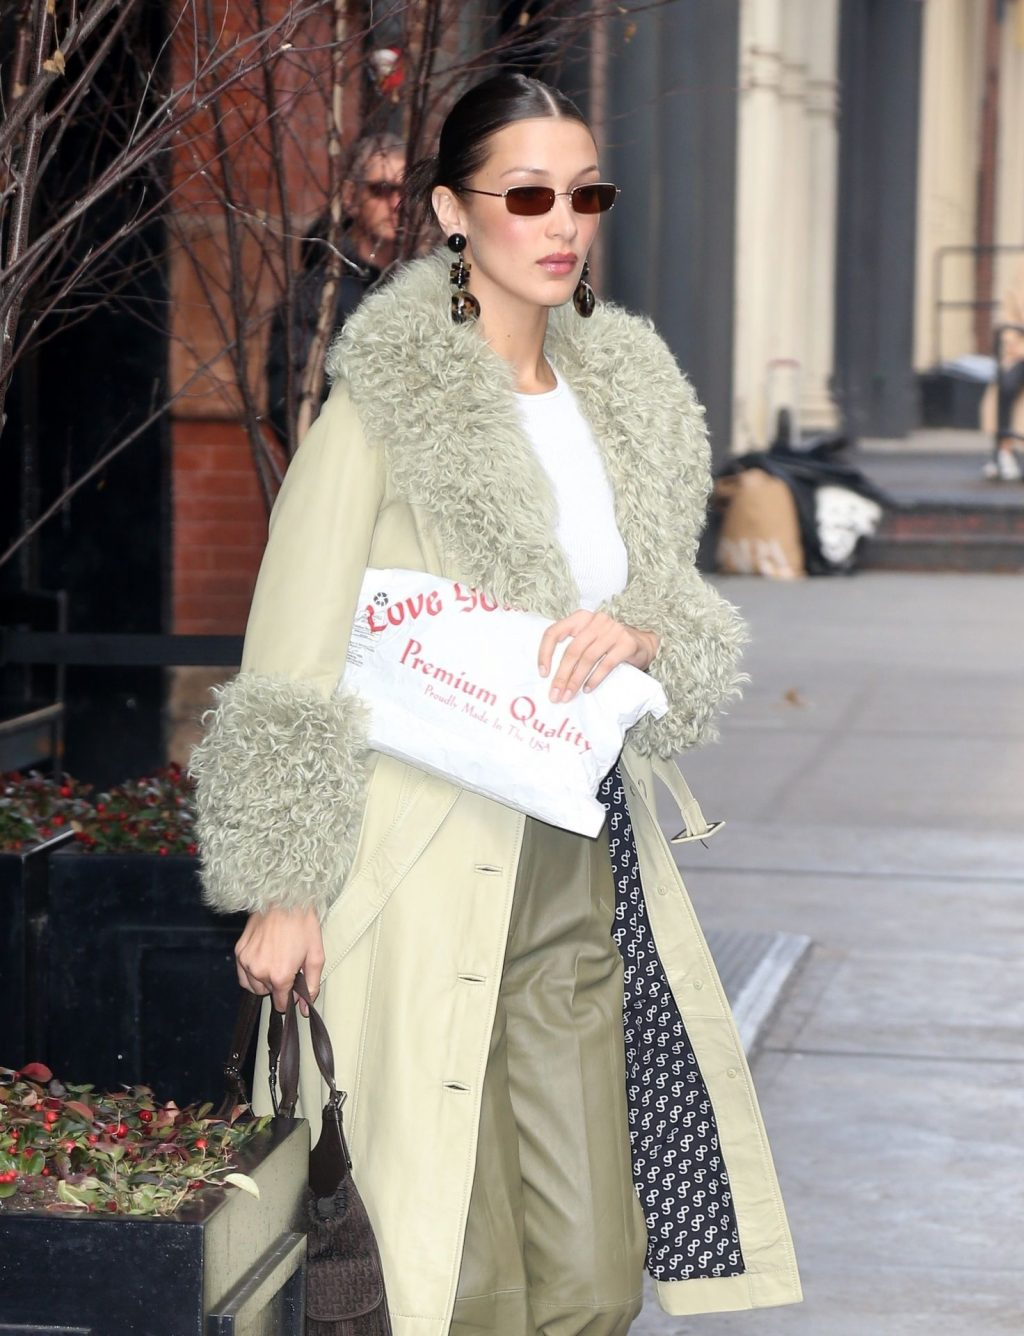 Bella Hadid See through The Fappening Blog 46 1024x1336 - Braless Bella Hadid Arrives at the Park Avenue Armory for the Marc Jacobs Fashion Show (59 Photos)